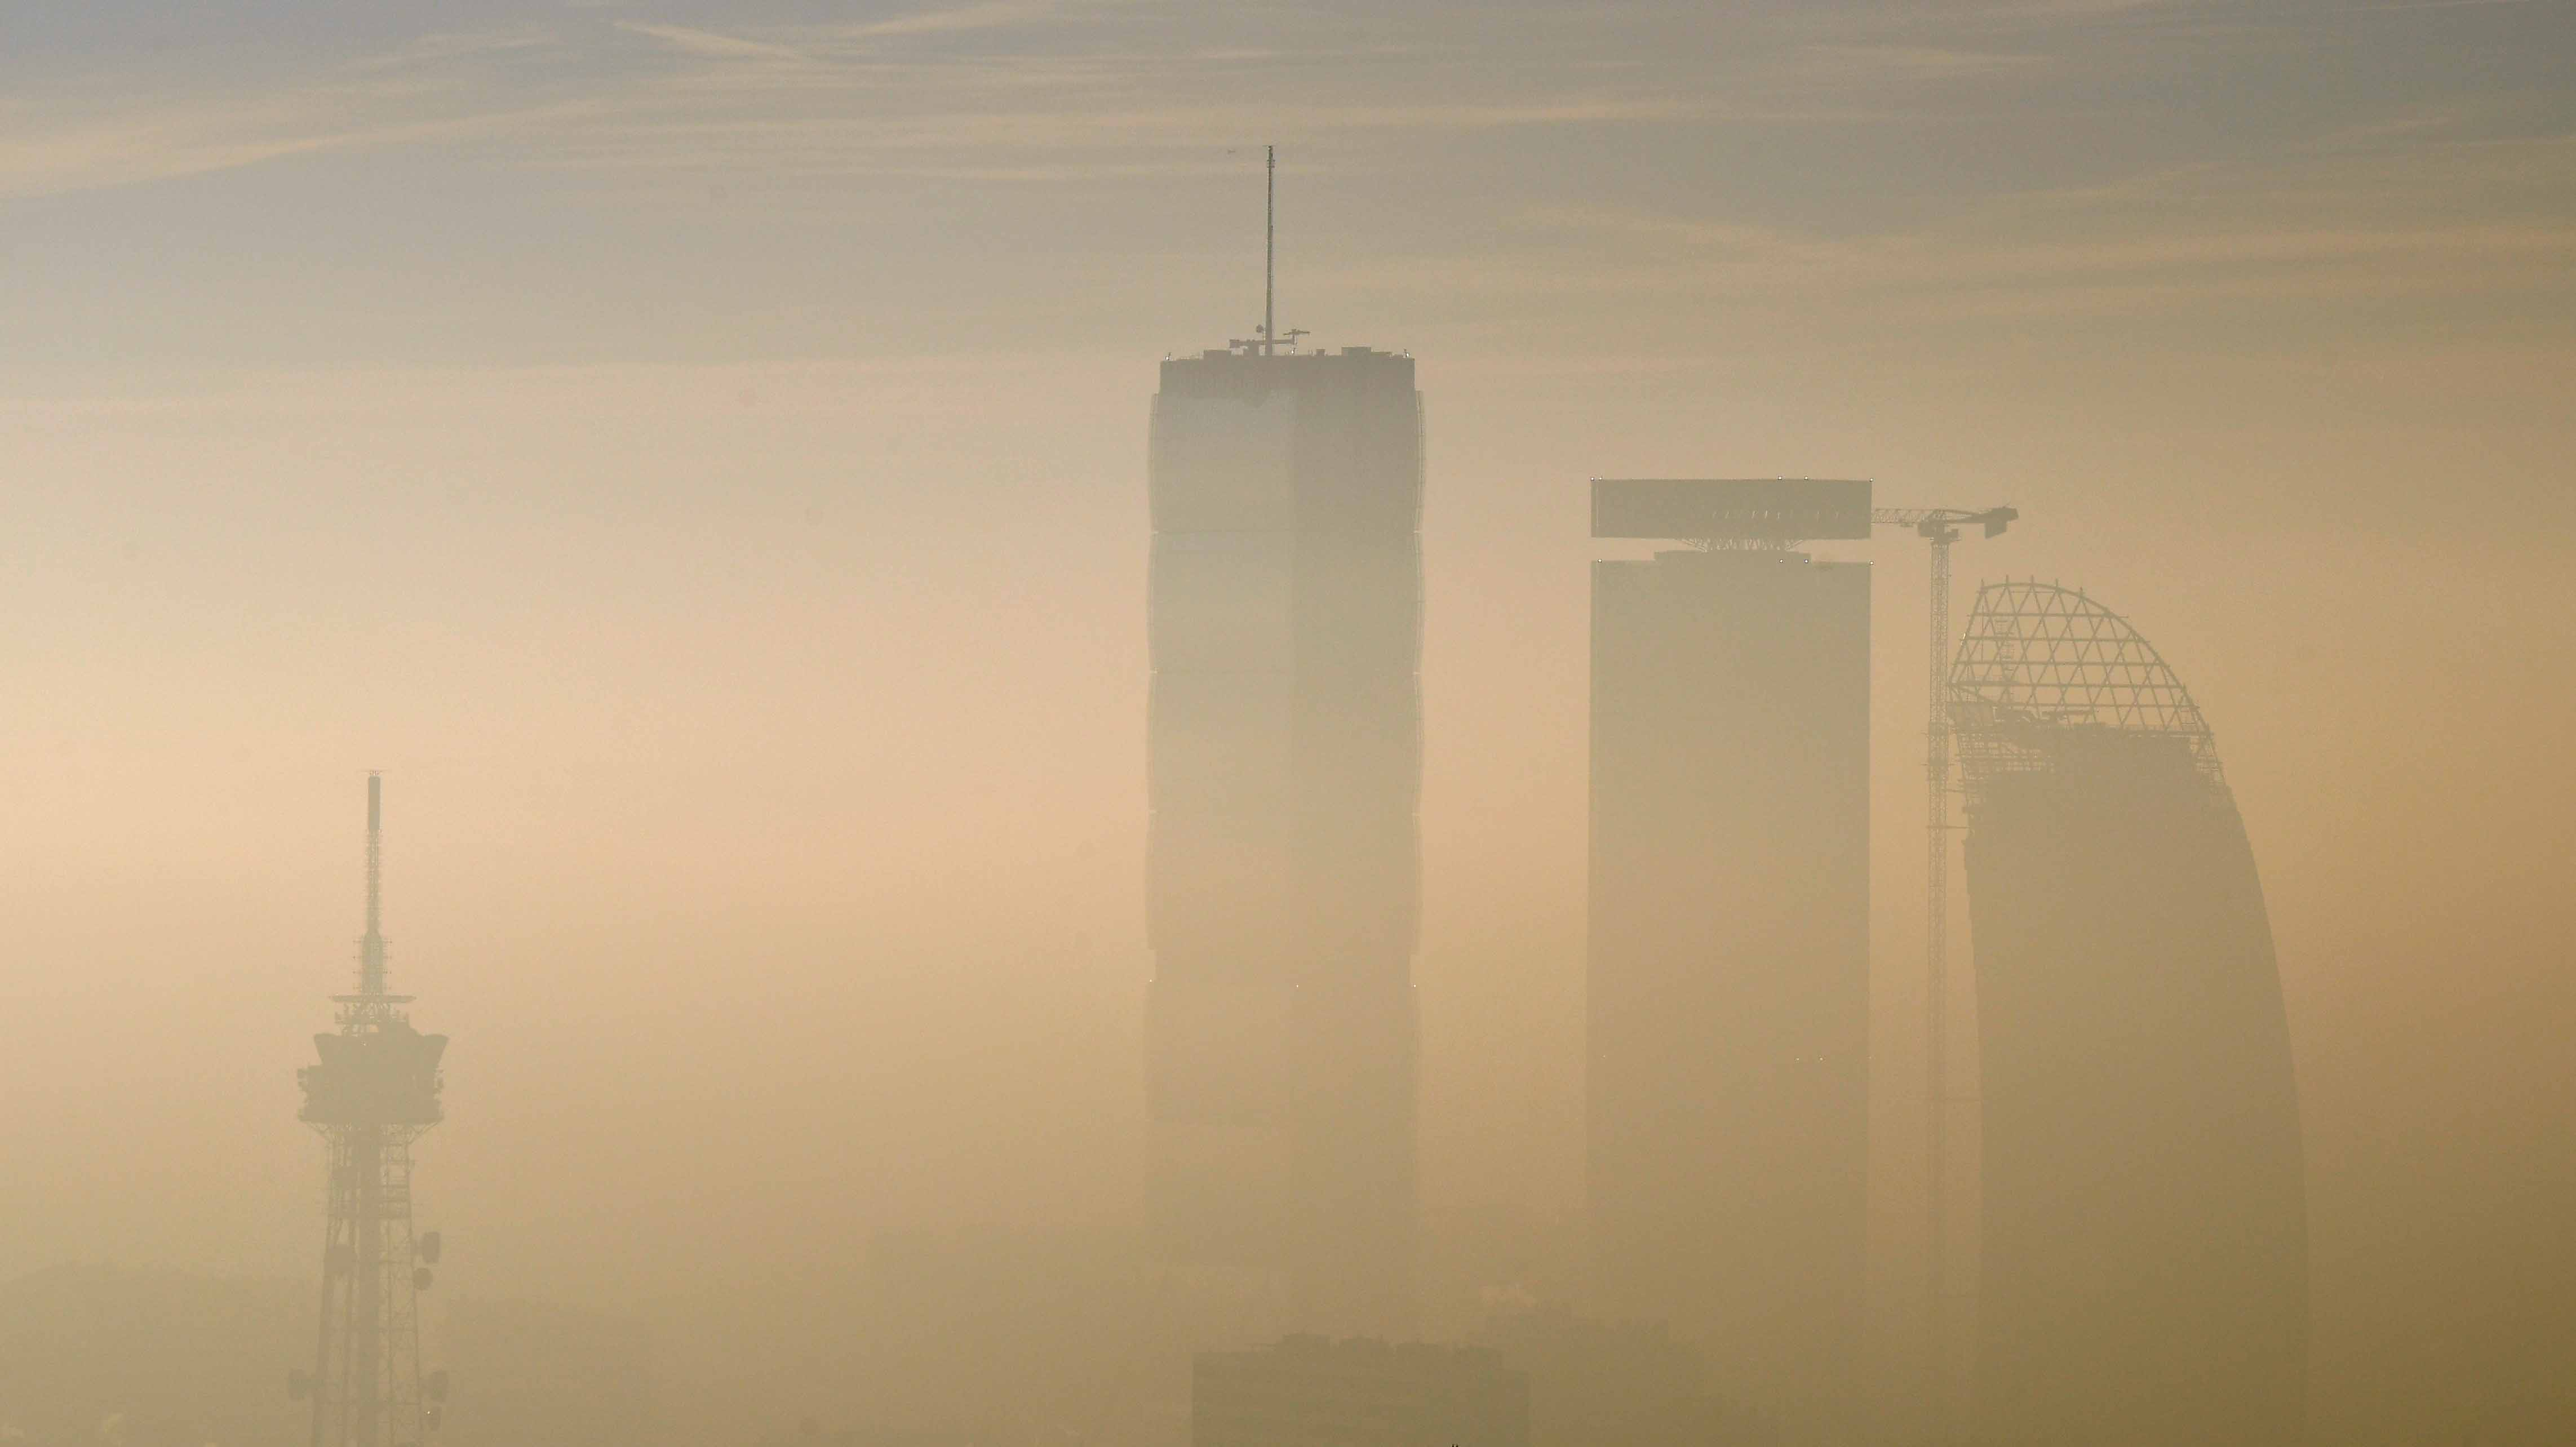 Breathing polluted air linked to risk of obesity, diabetes, other chronic illnesses: Study